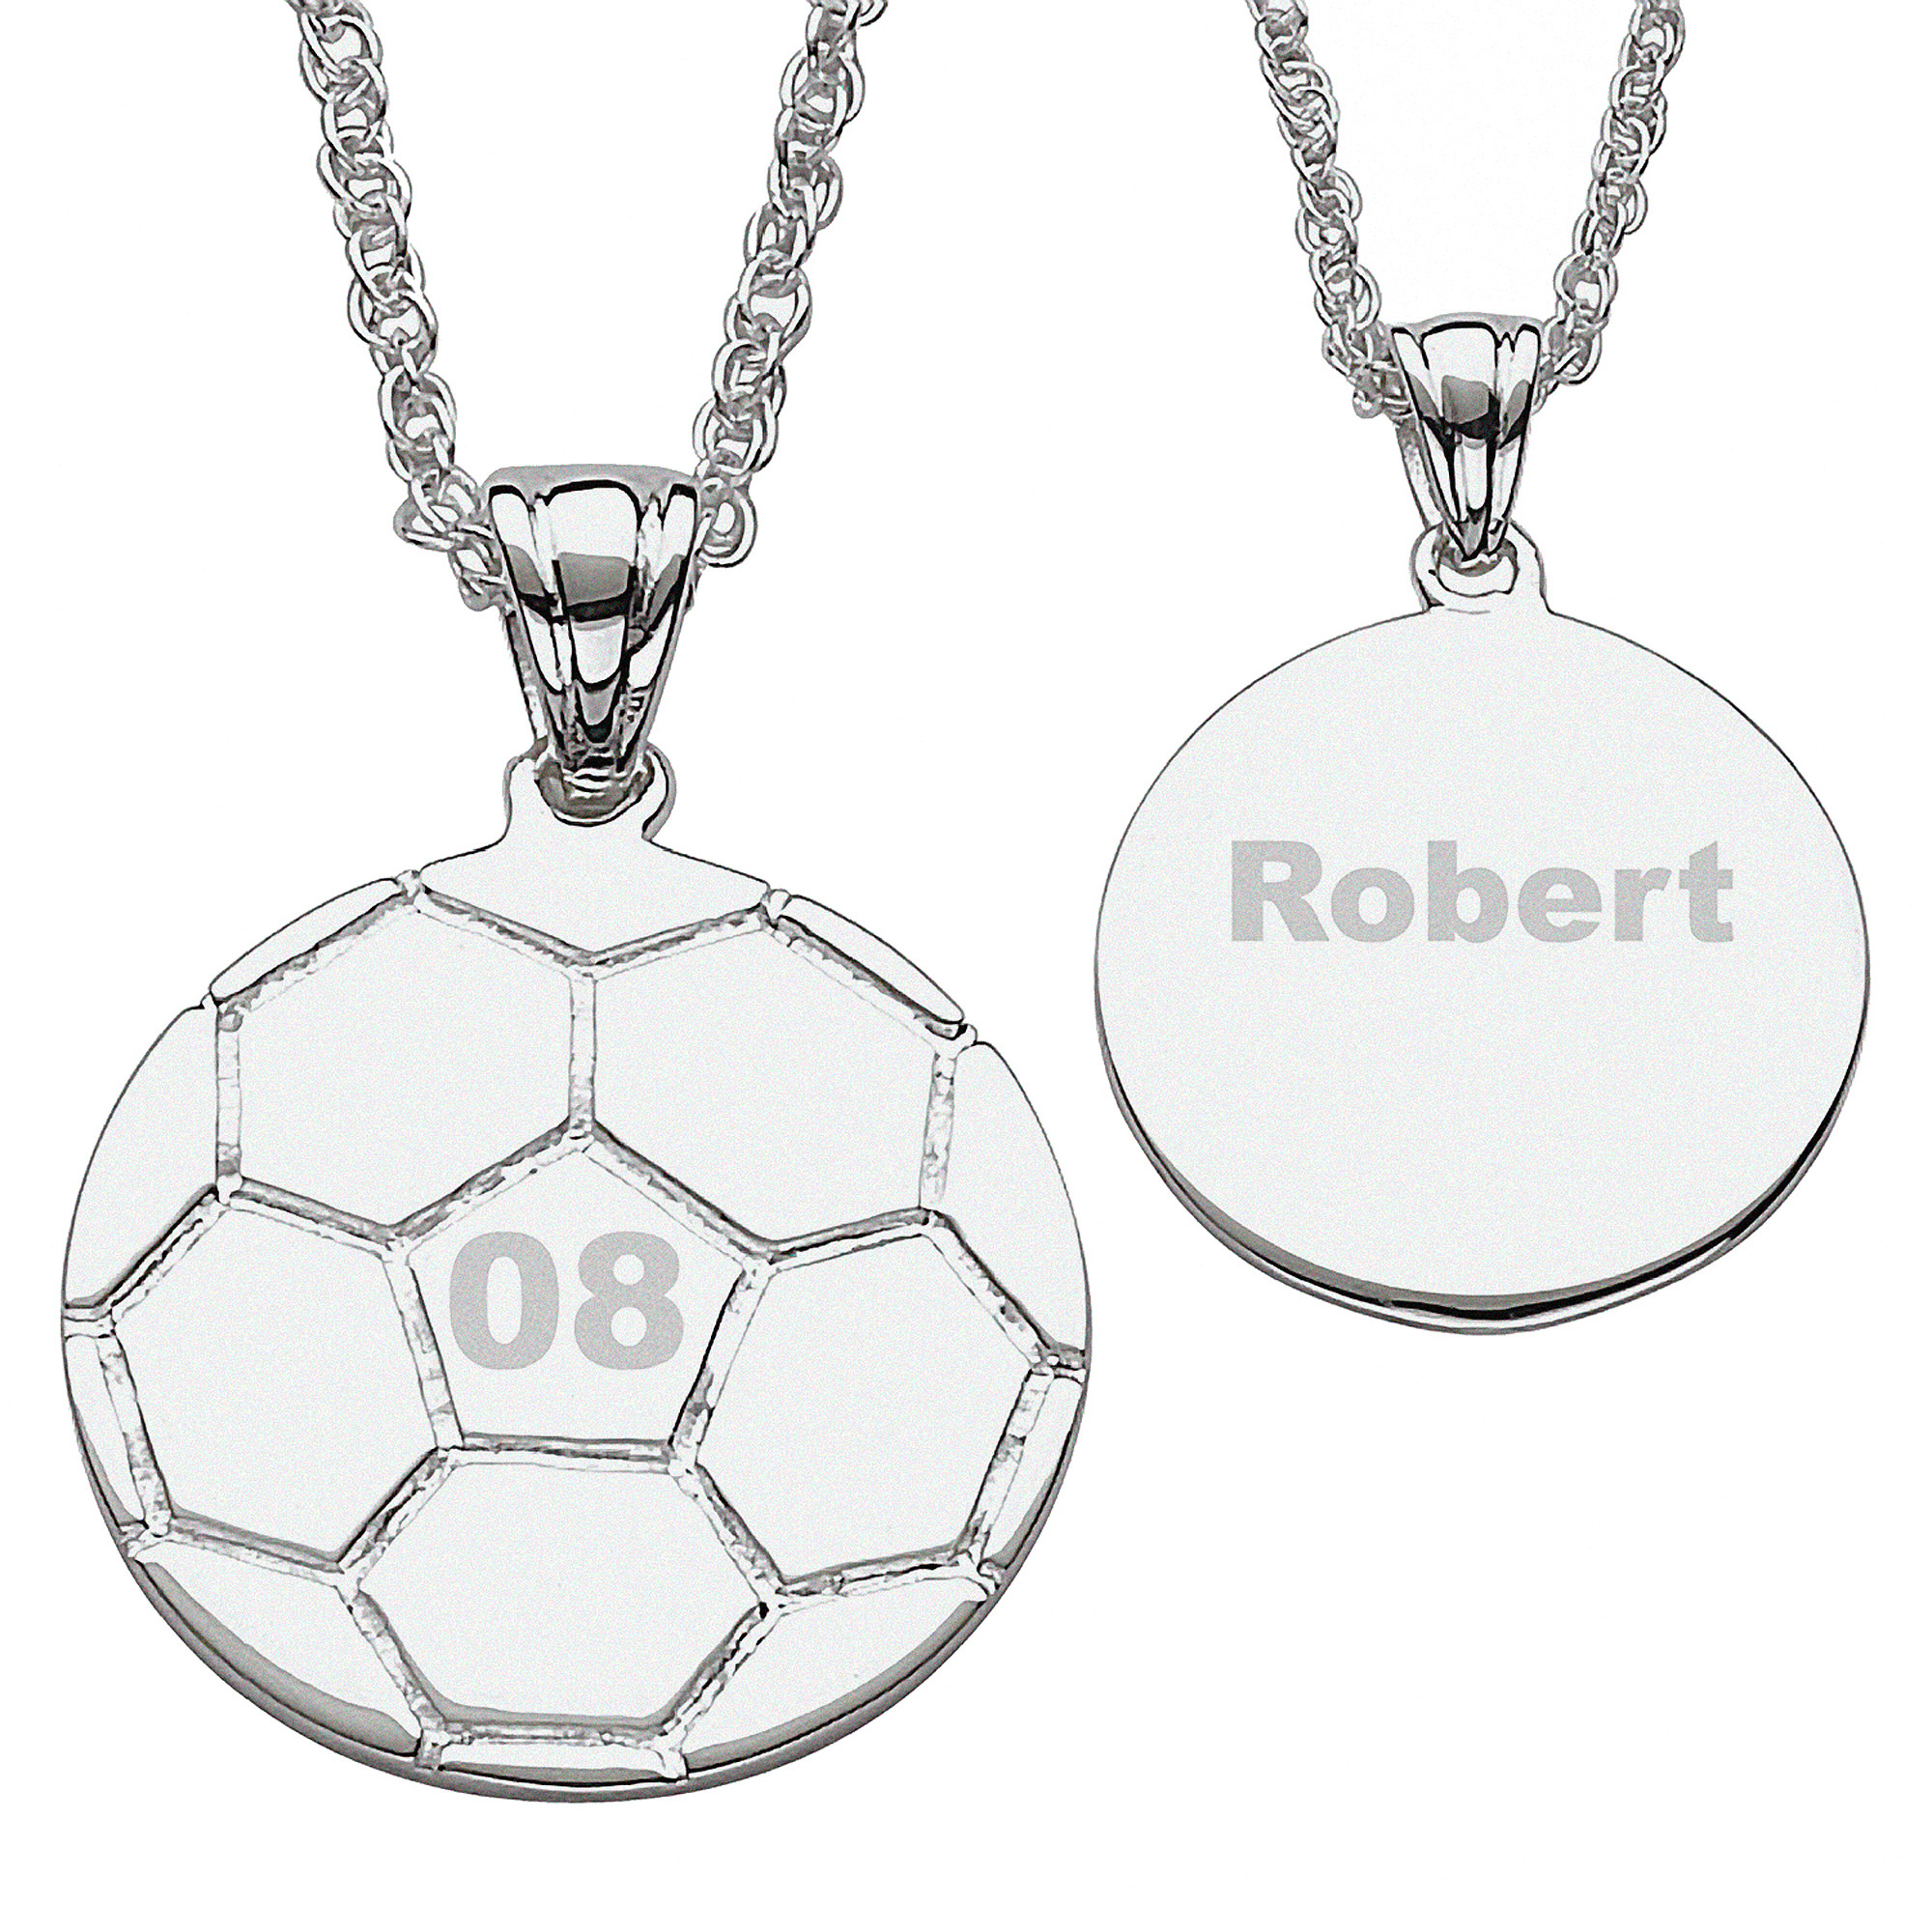 Personalized Silver-Tone Soccer Necklace